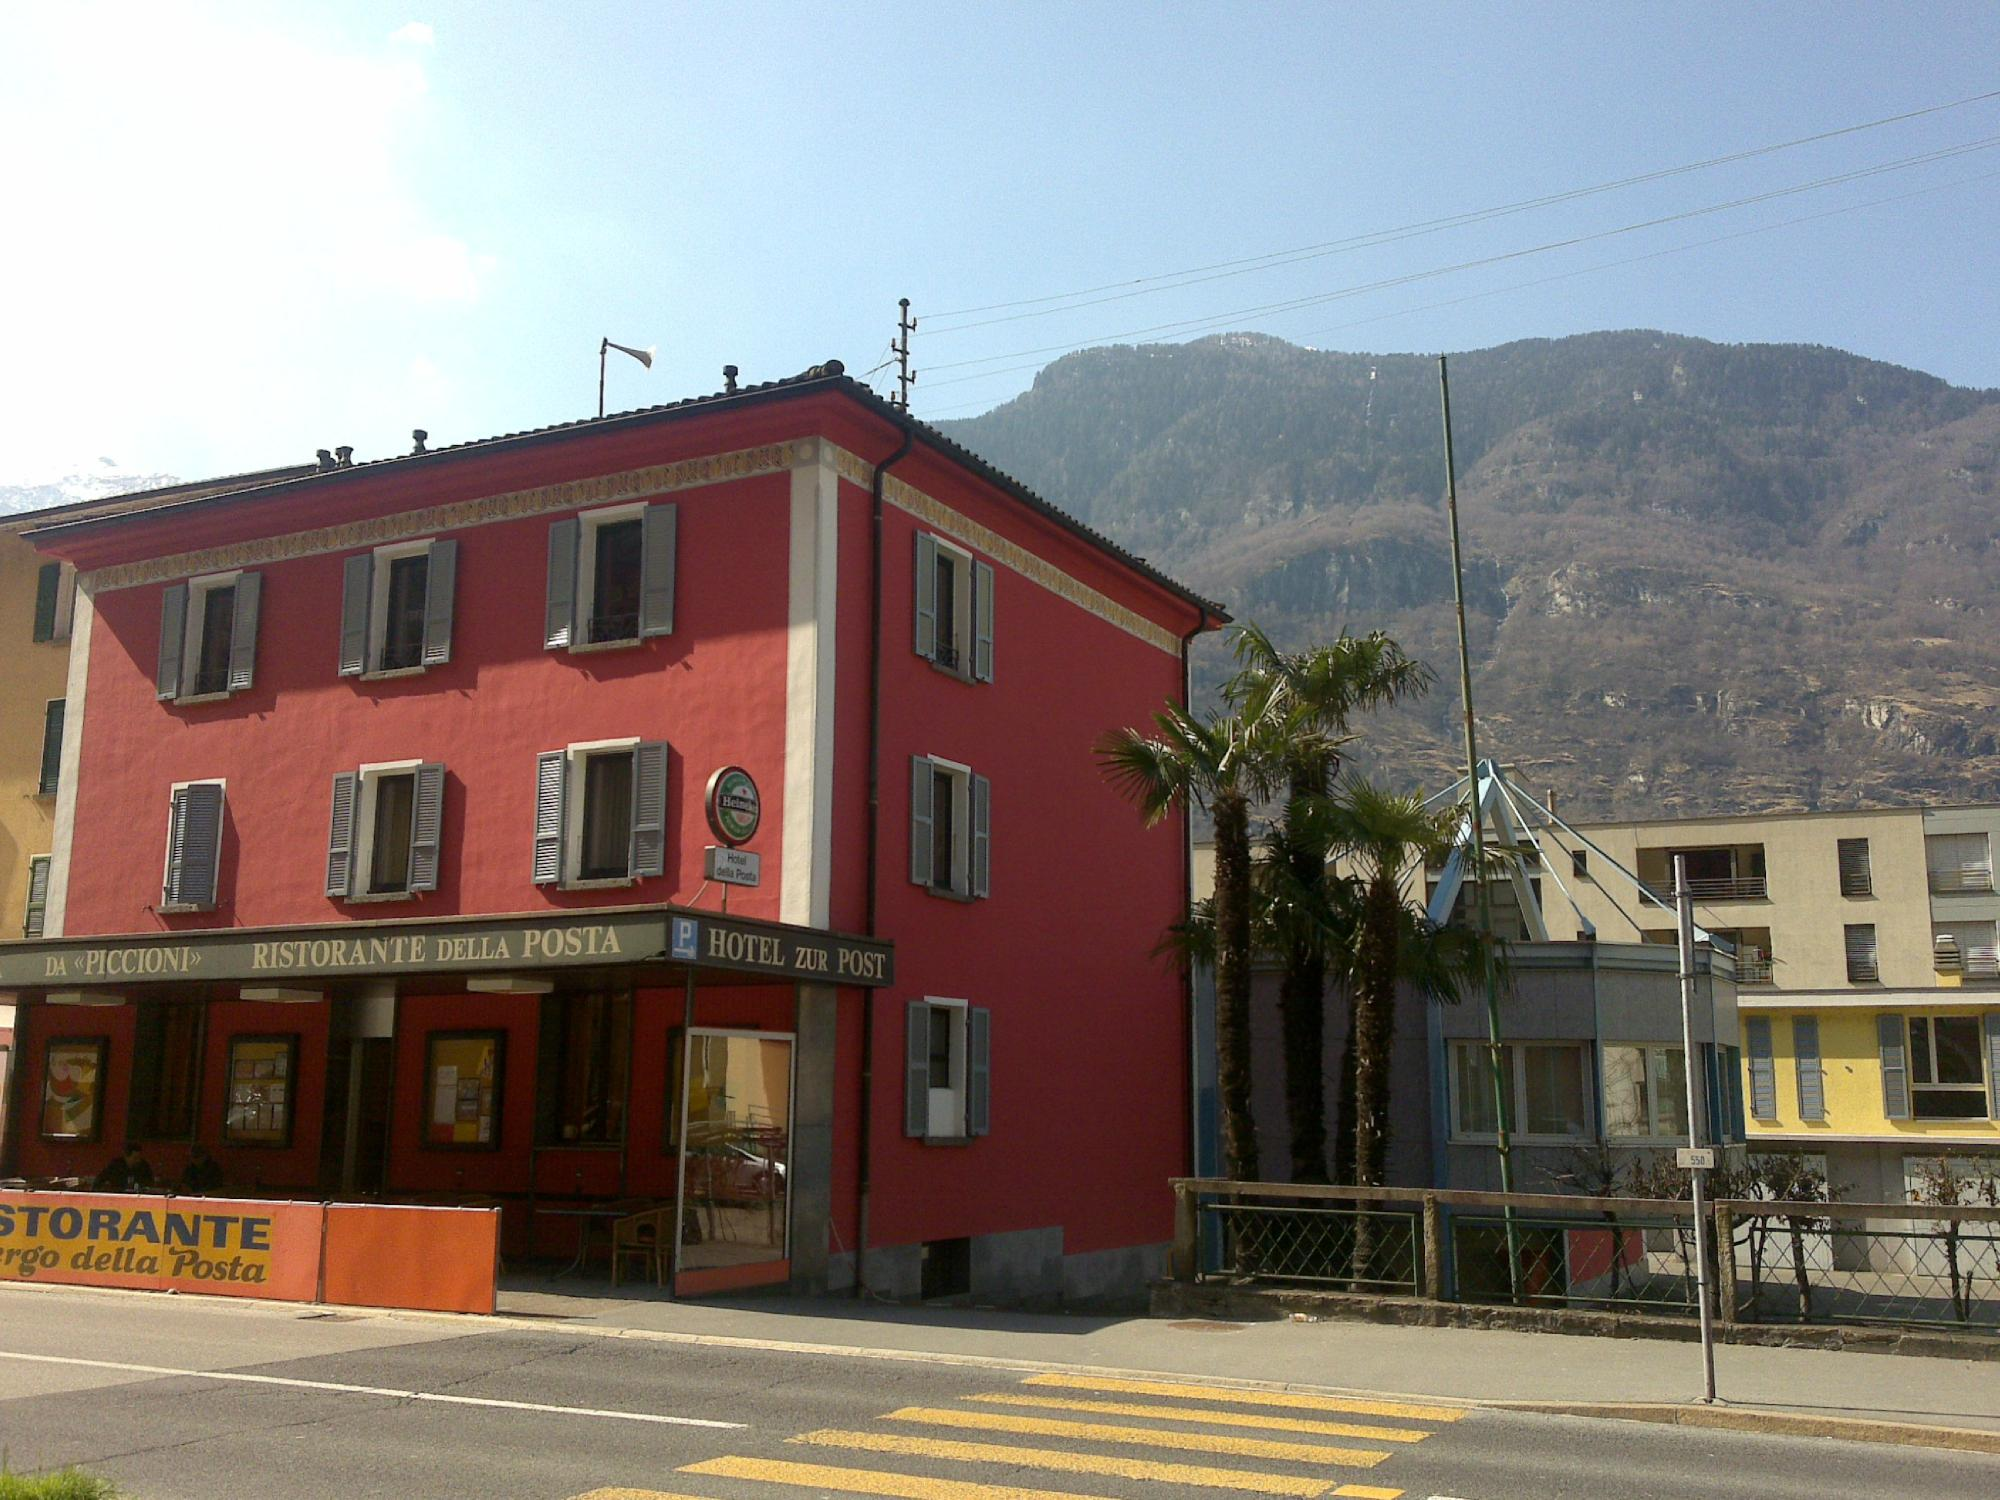 Hotel of the Post